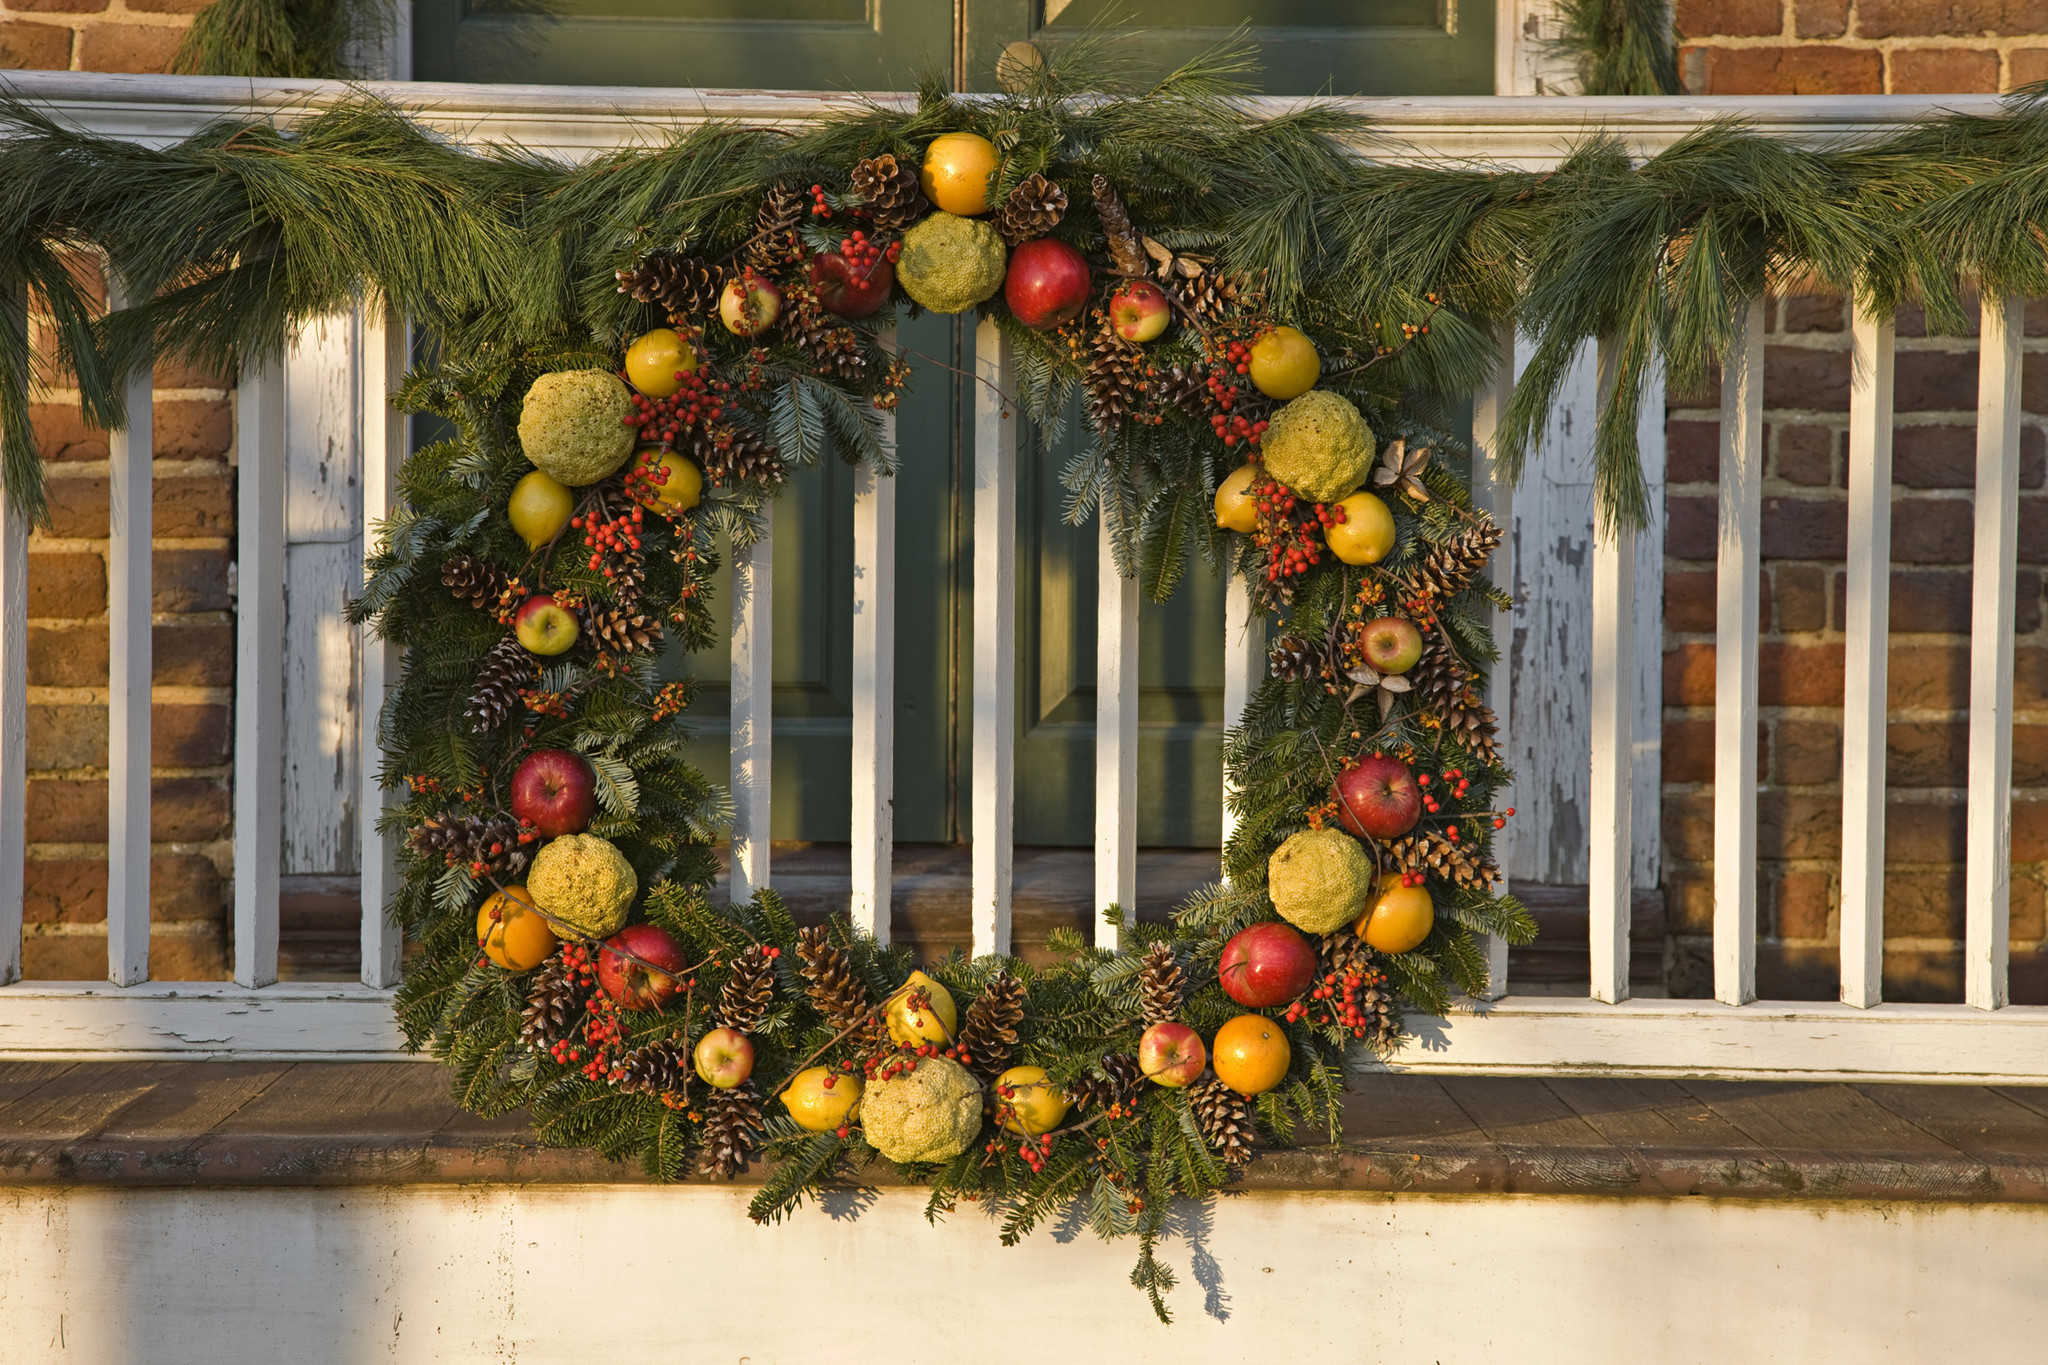 Colonial williamsburg holiday decorations 18th century for H h christmas decorations